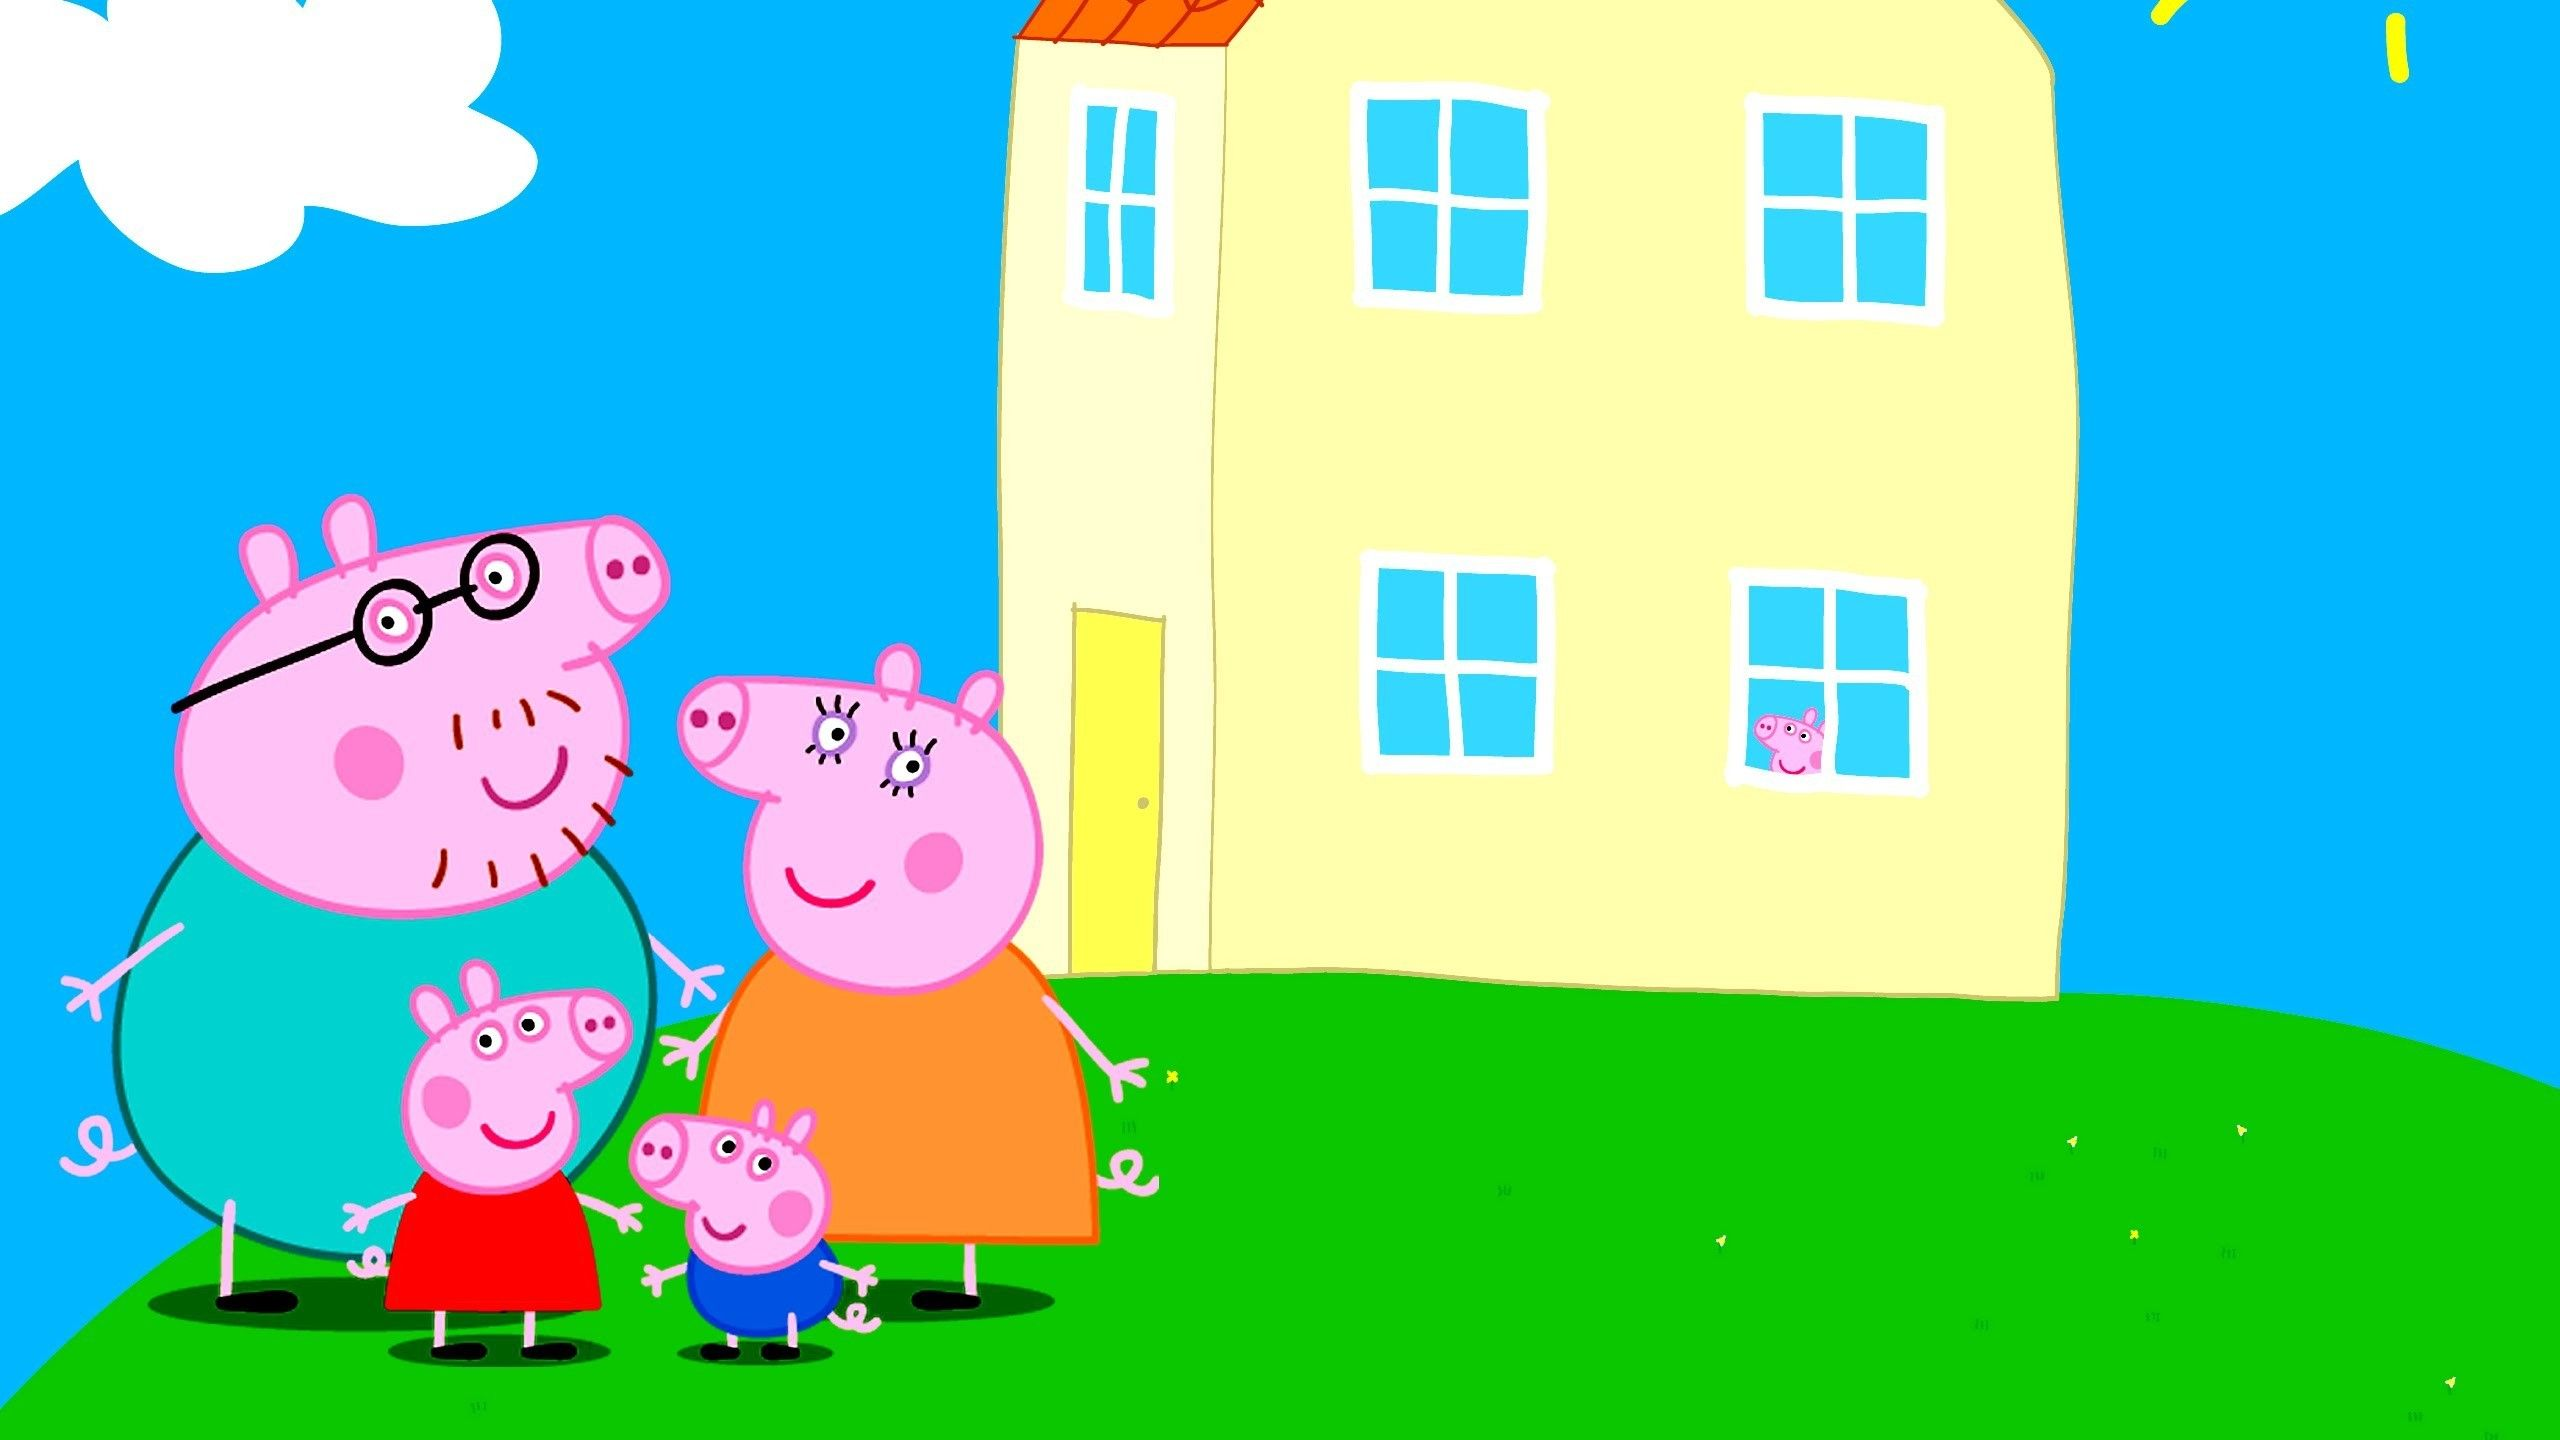 Peppa Pig Backgrounds 96 Wallpapers HD Wallpapers in 2021 2560x1440